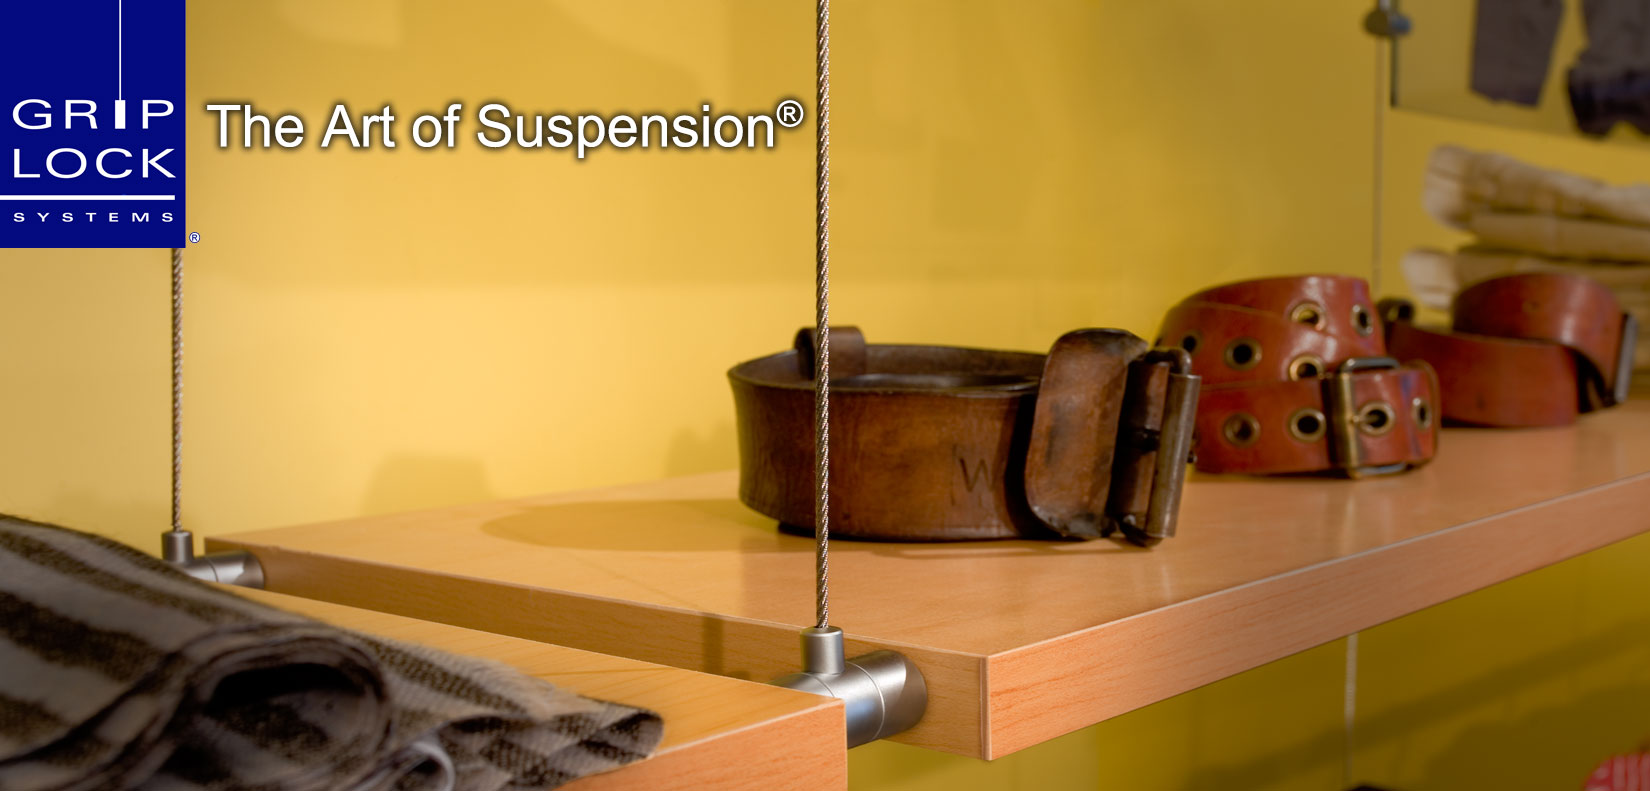 Display Suspension Systems | The Art of Suspension®